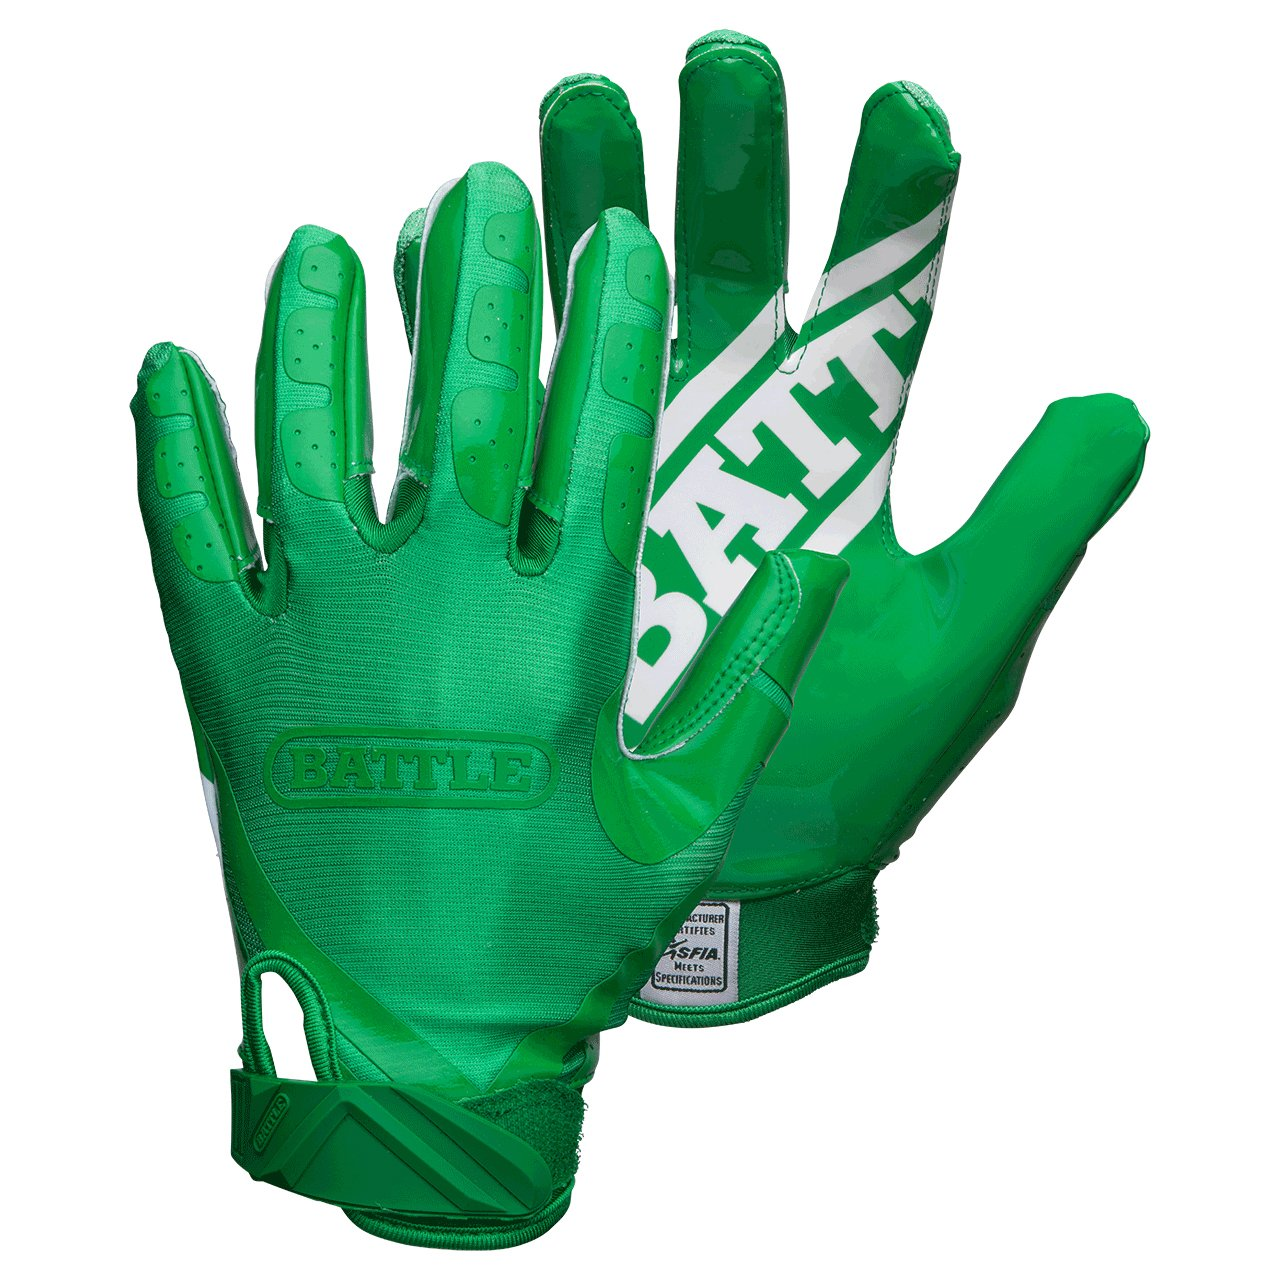 Battle Double Threat Adult Football Gloves, Green/Green, Small